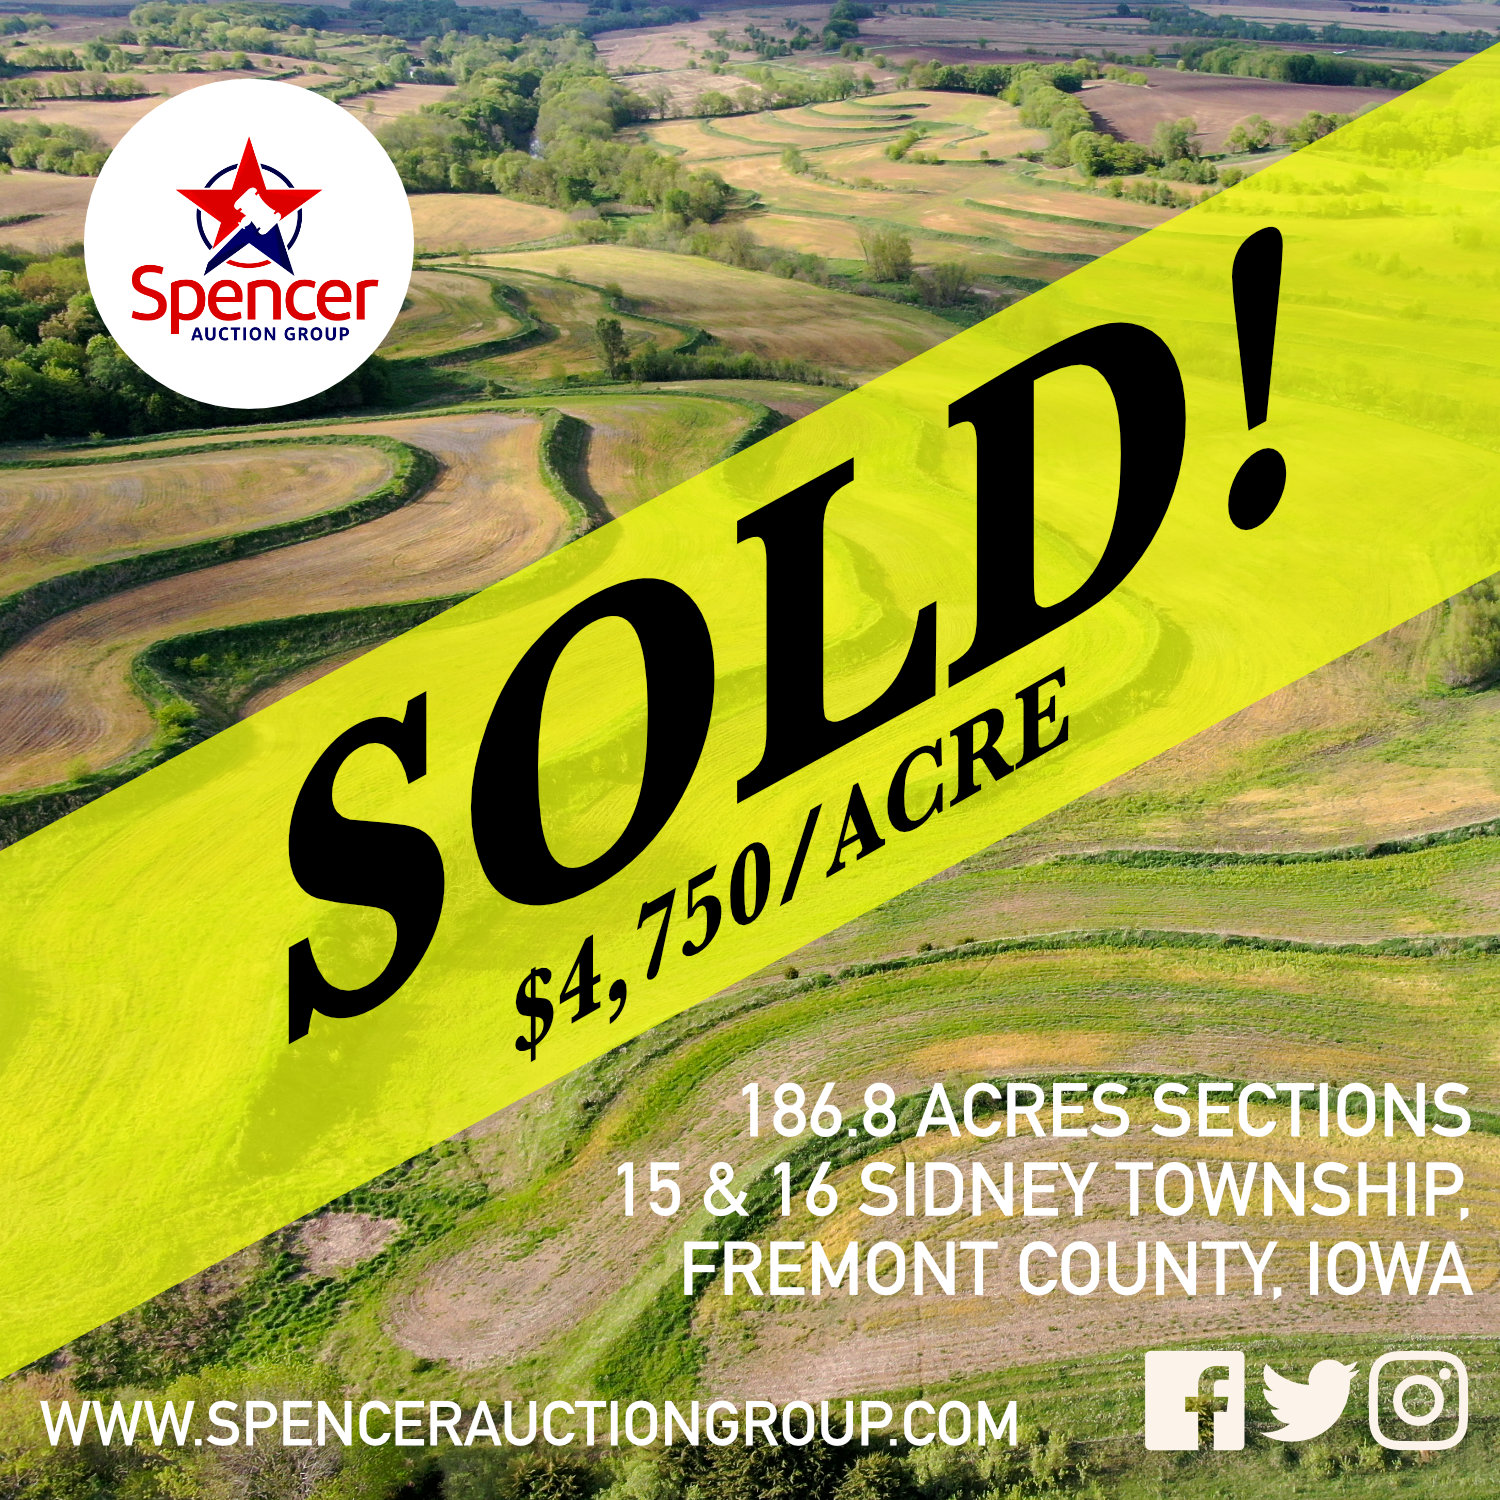 SOLD - 186.8 ACRE FREMONT COUNTY IOWA